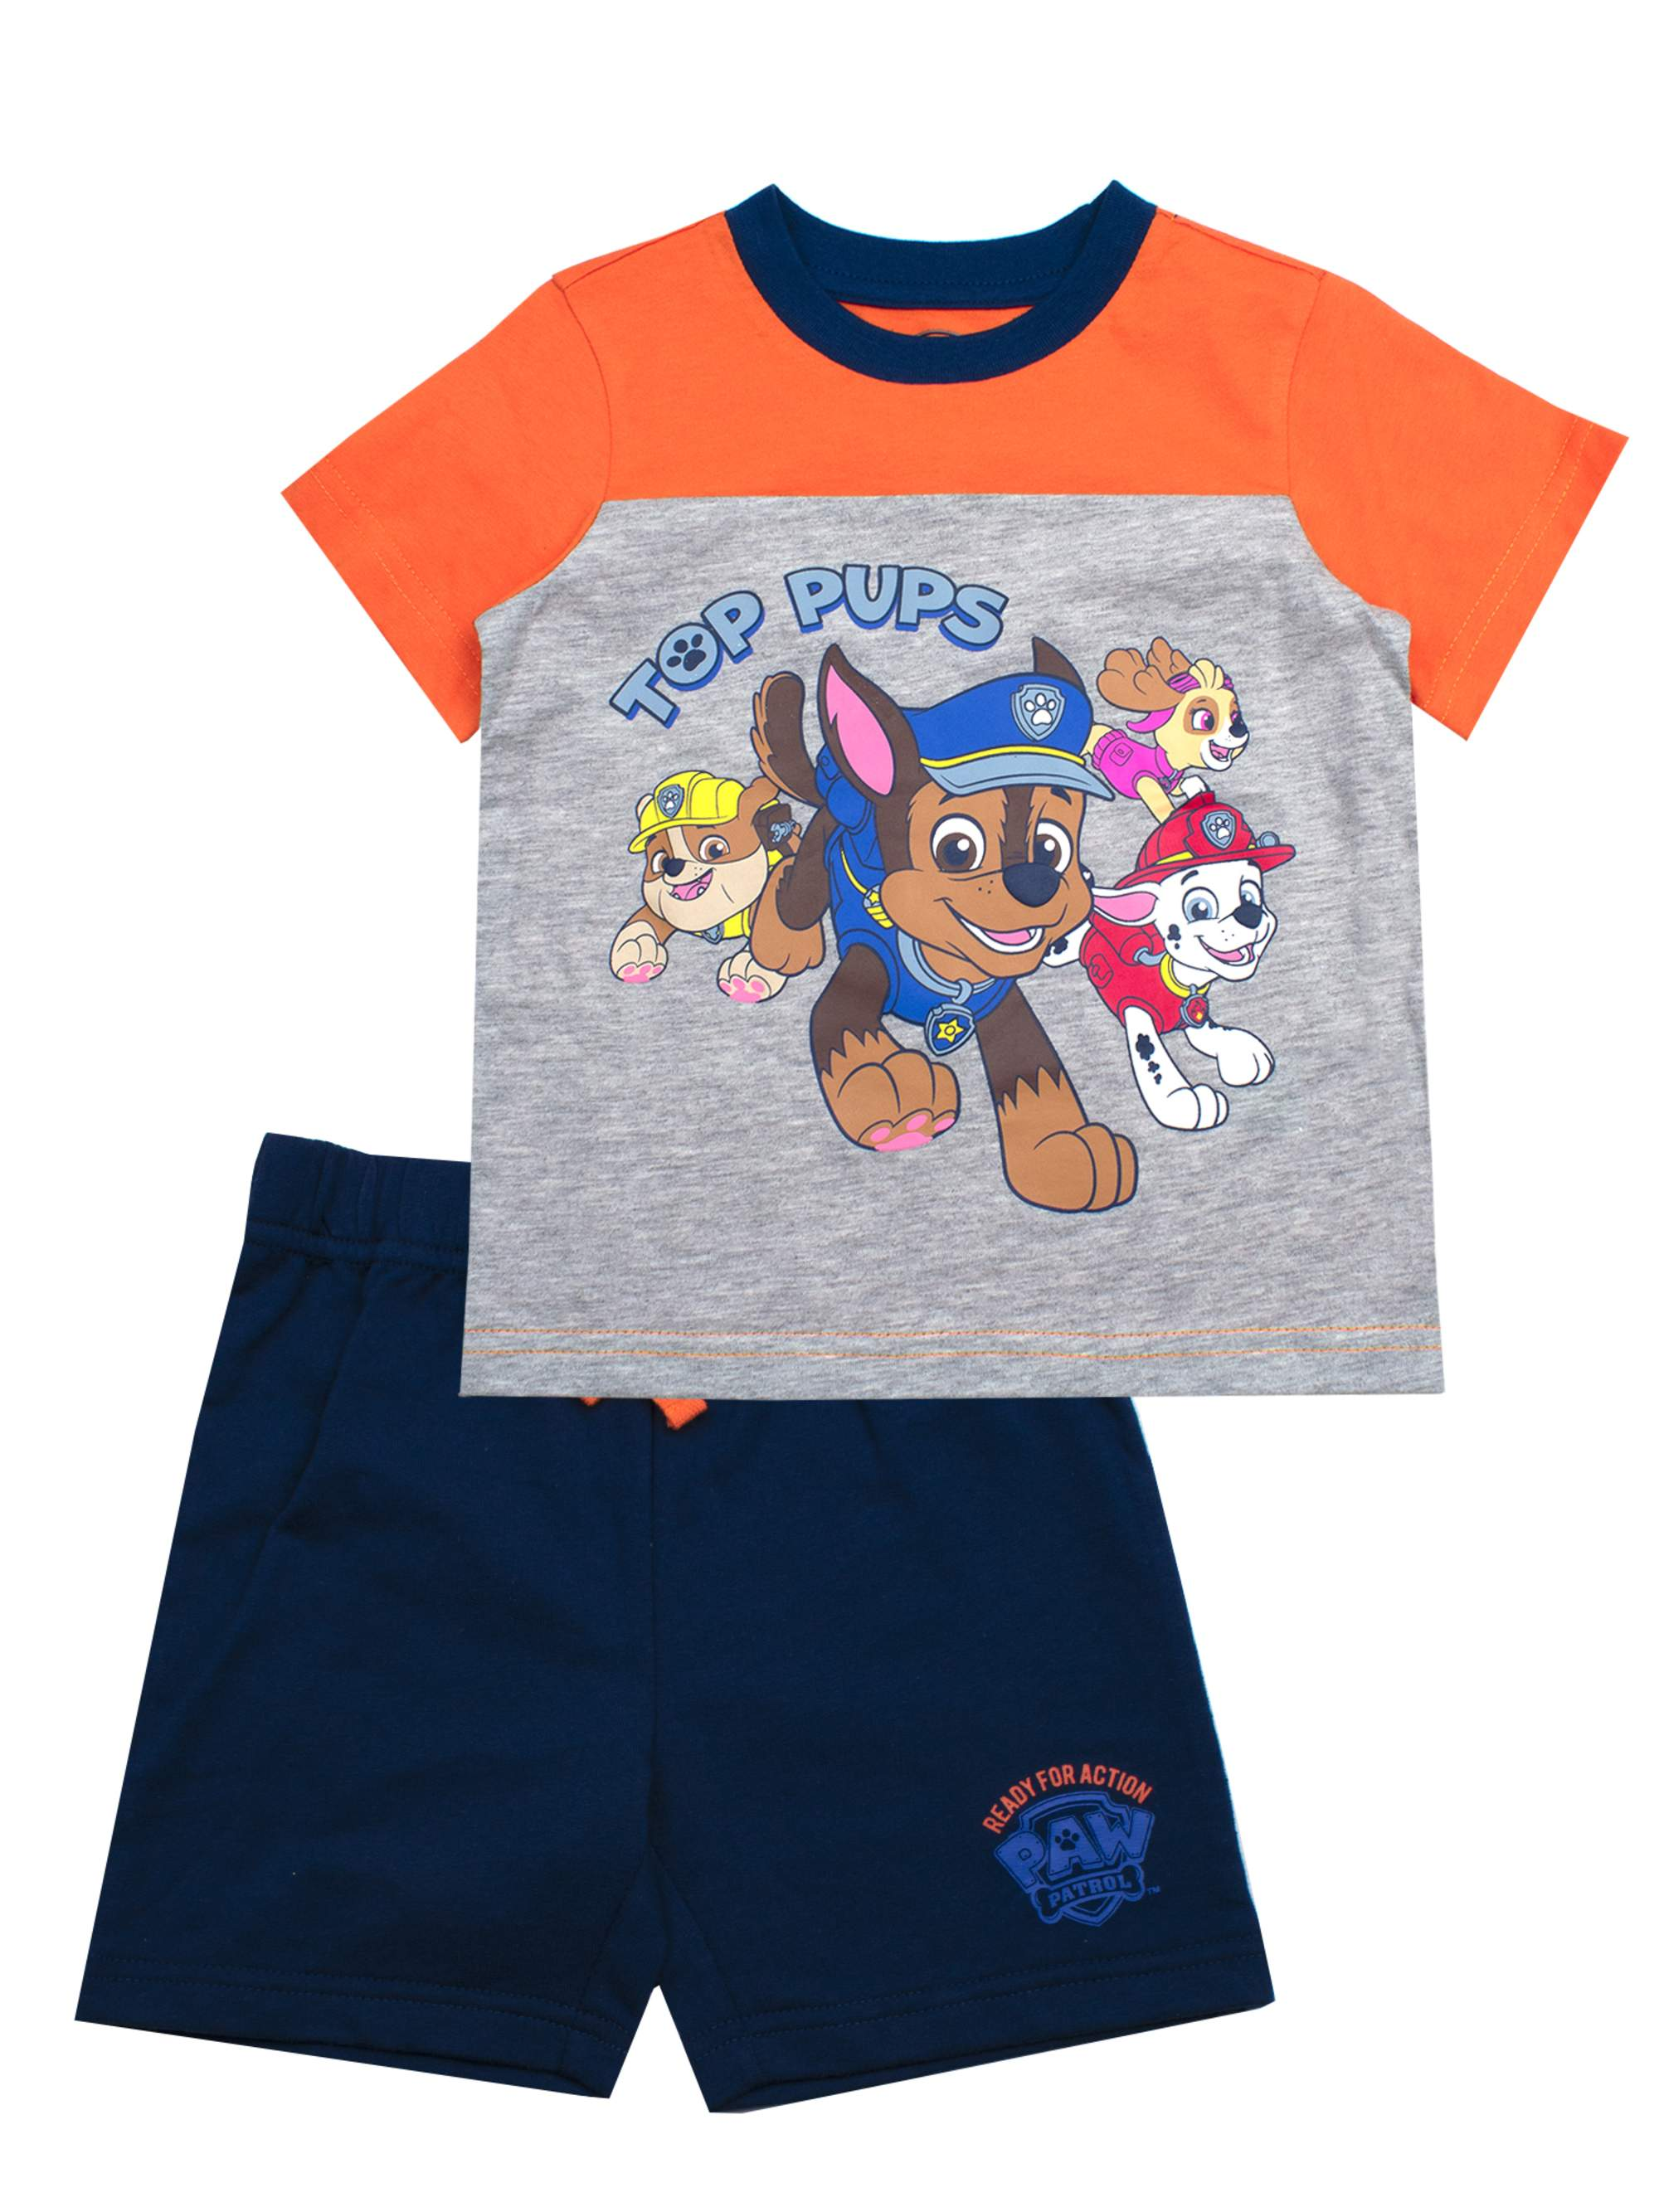 Short Sleeve Top Pups Character Tee and French Terry Shorts Set, 2-Piece Outfit Set (Little Boys)